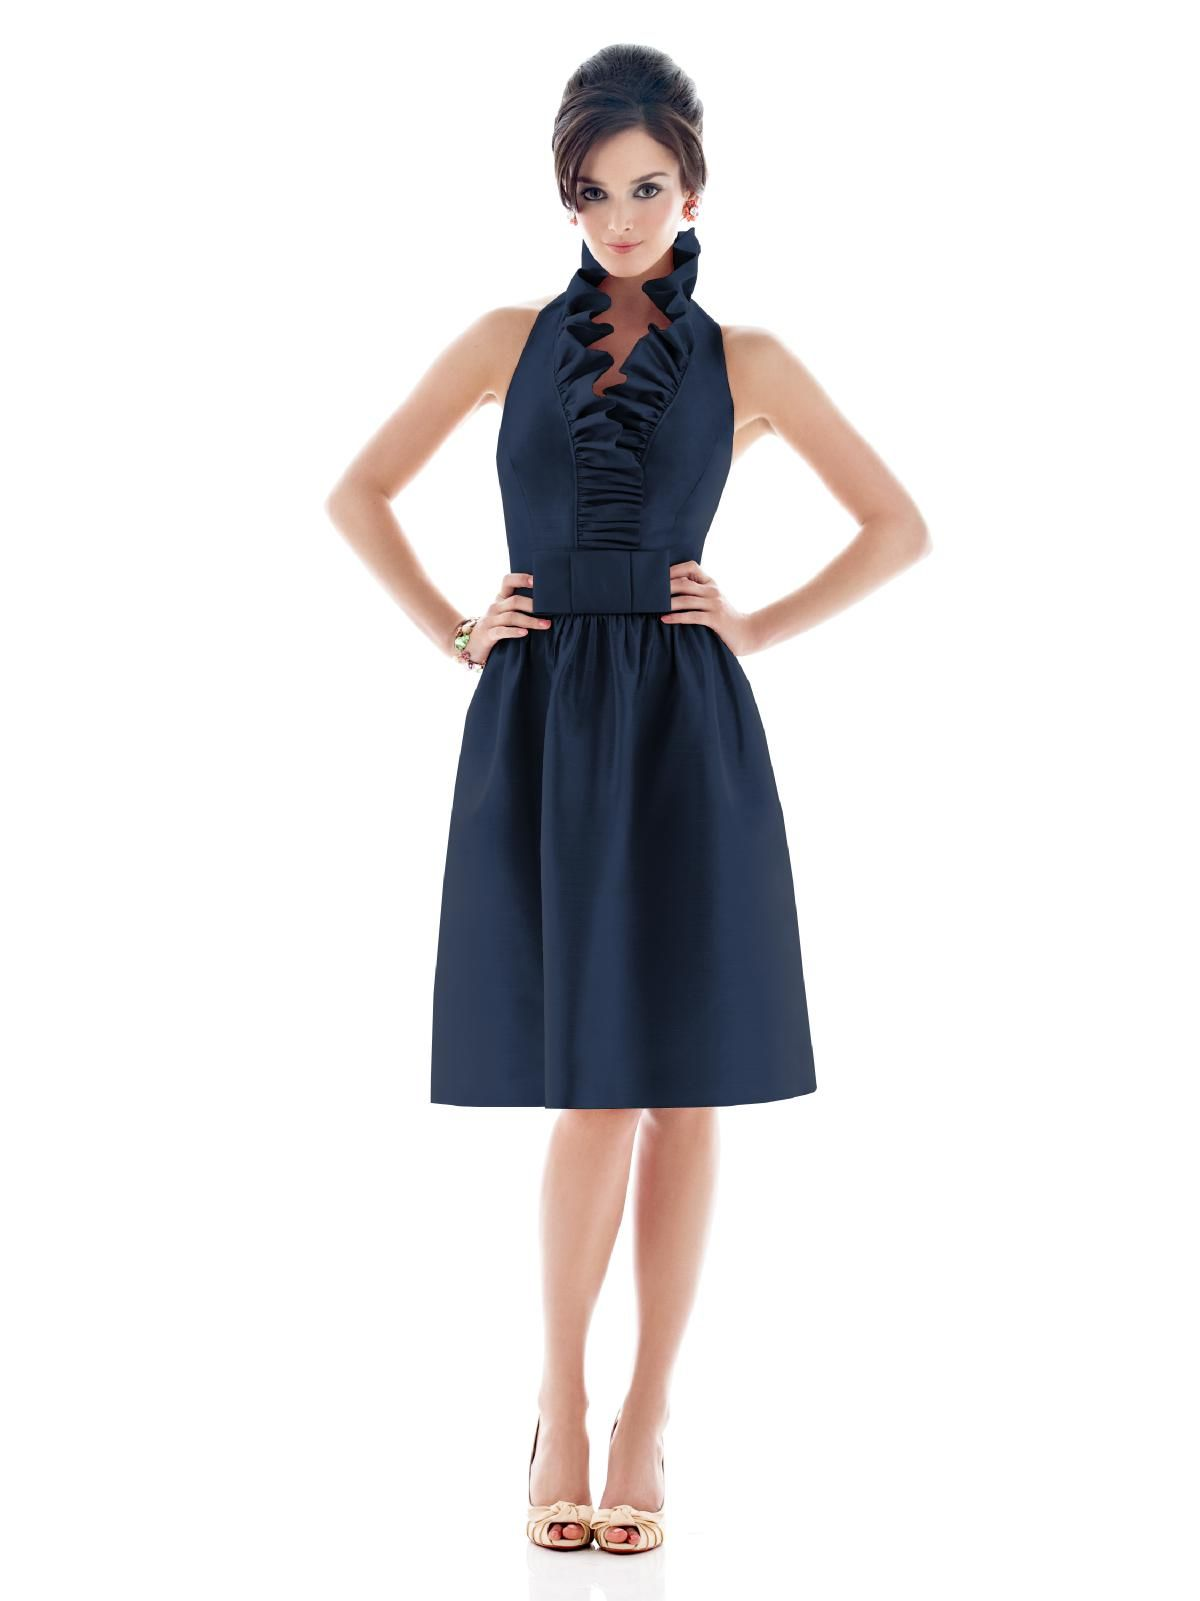 Alfred sung navy blue sexiness my style pinterest alfred bridesmaid dress alfred sung midnight blue cocktail length halter neck wruffle flat bow at waist ombrellifo Image collections